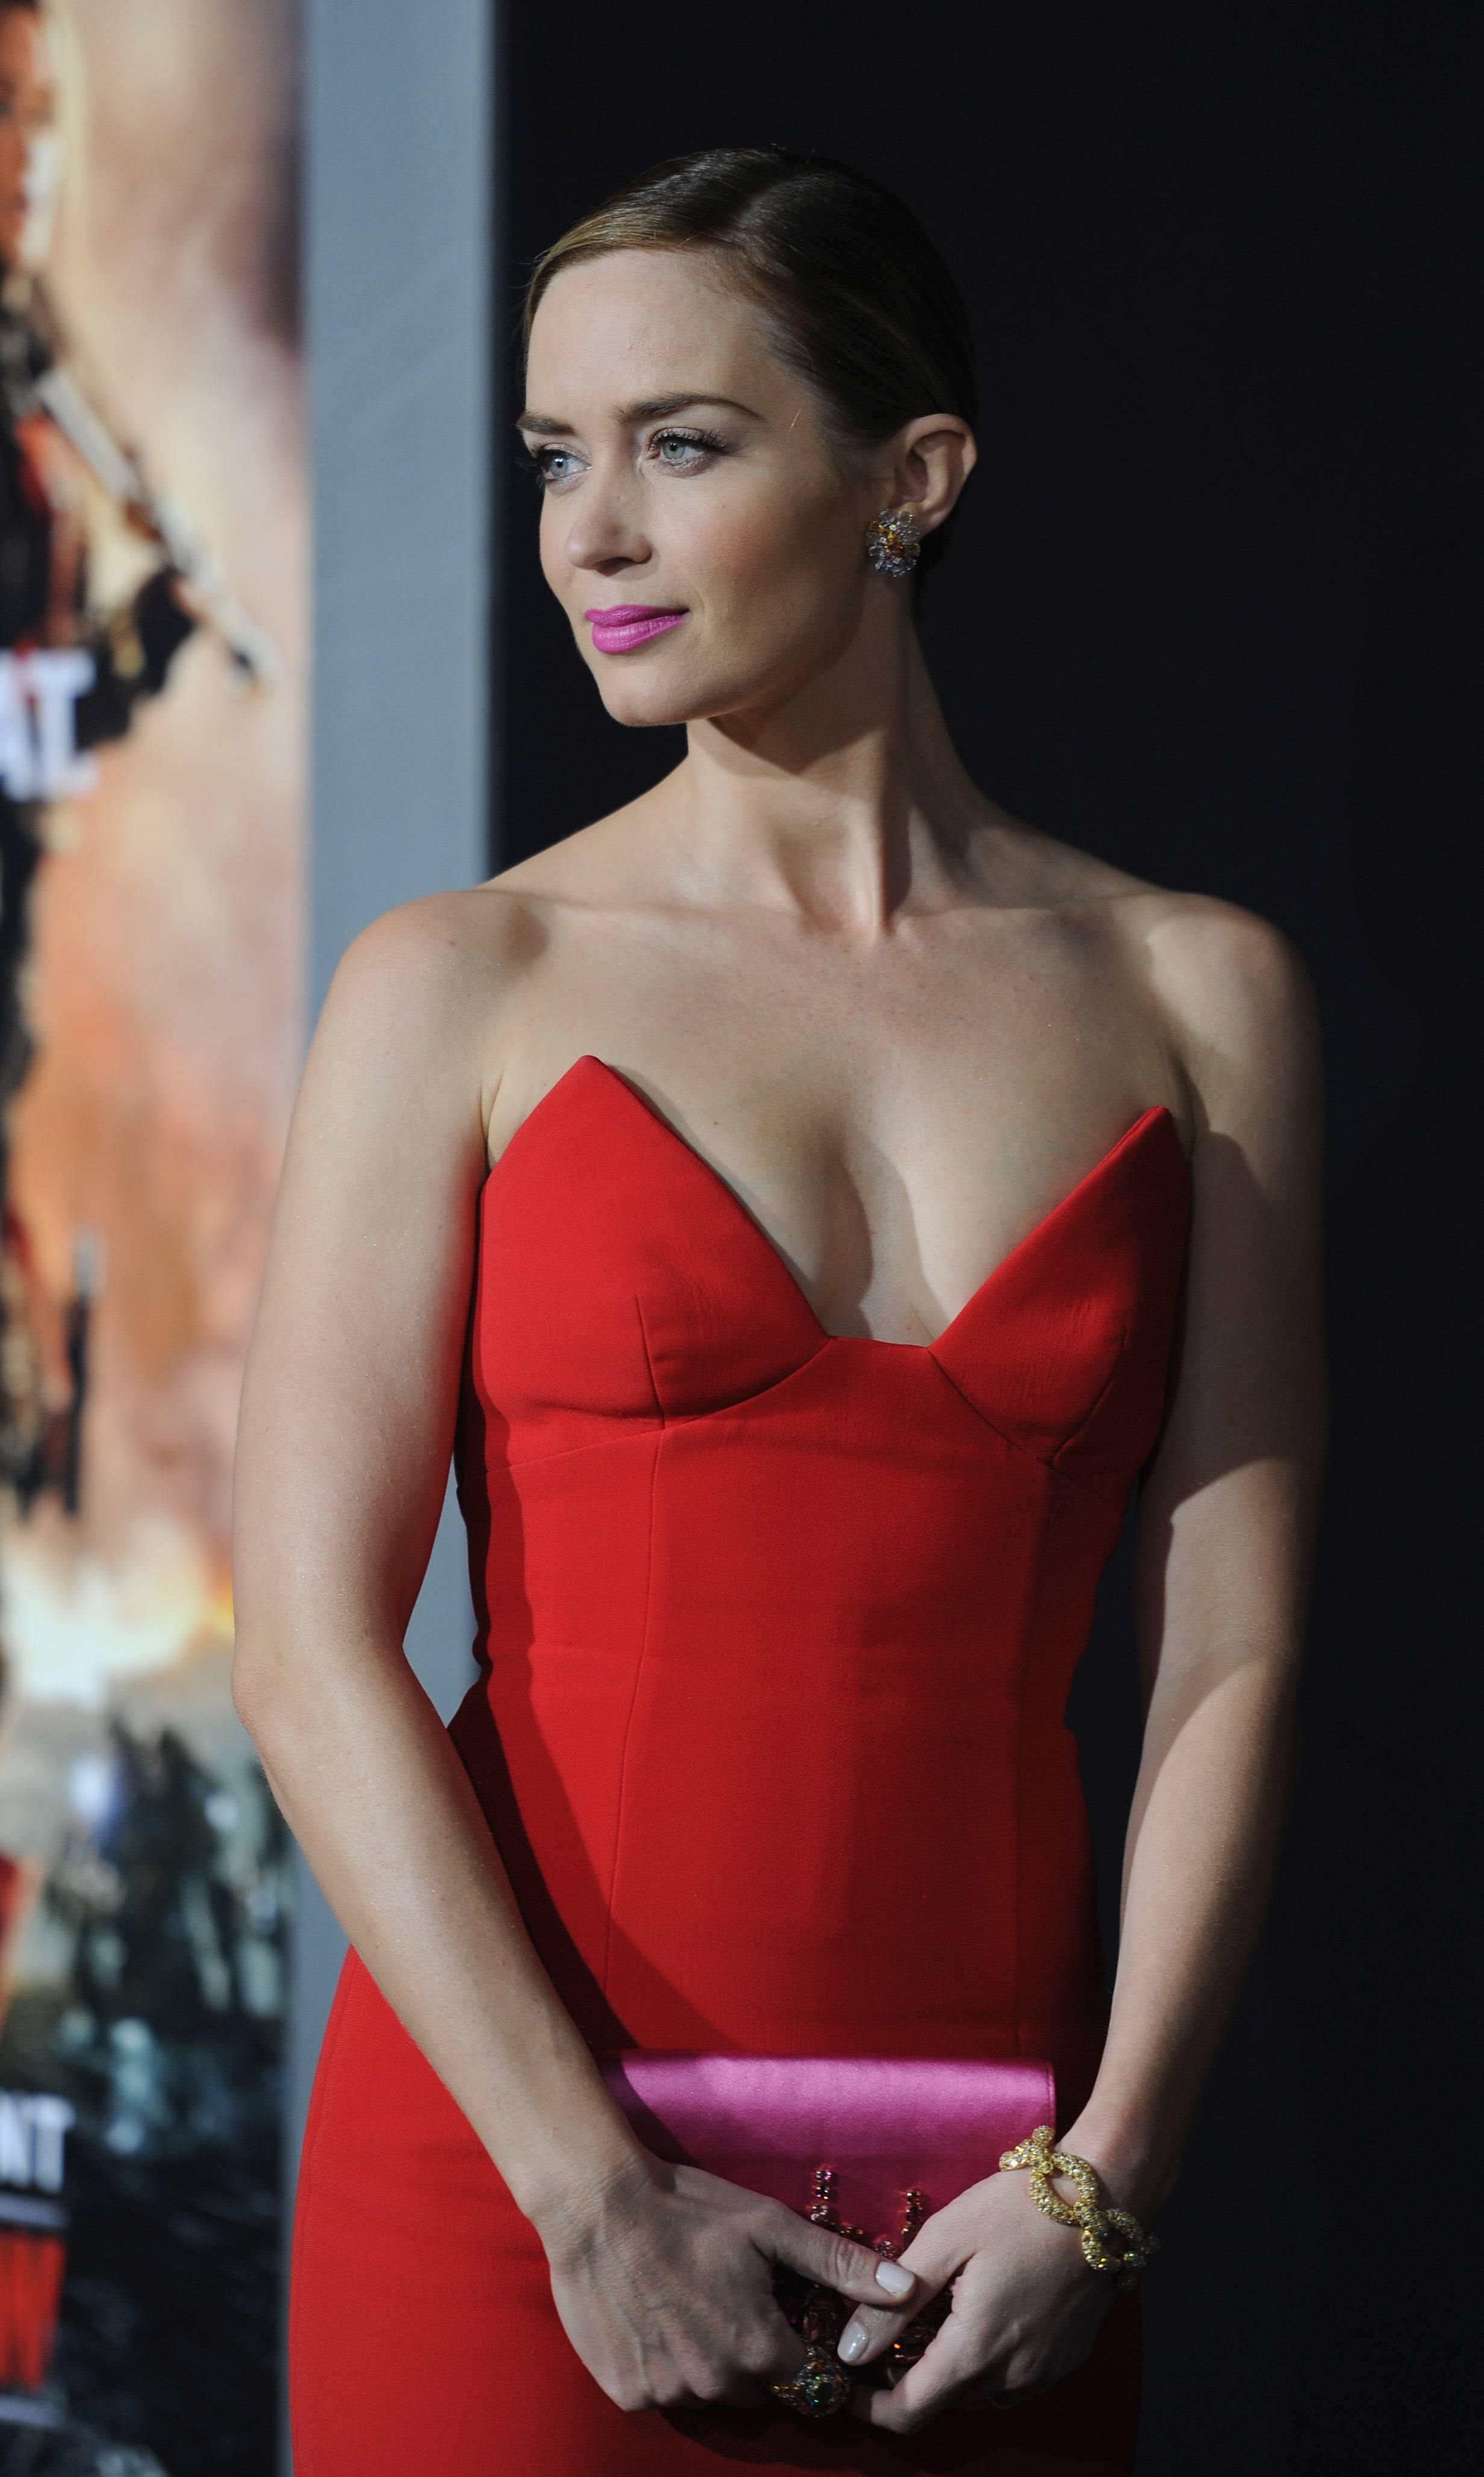 emily-blunt-sizzling-images